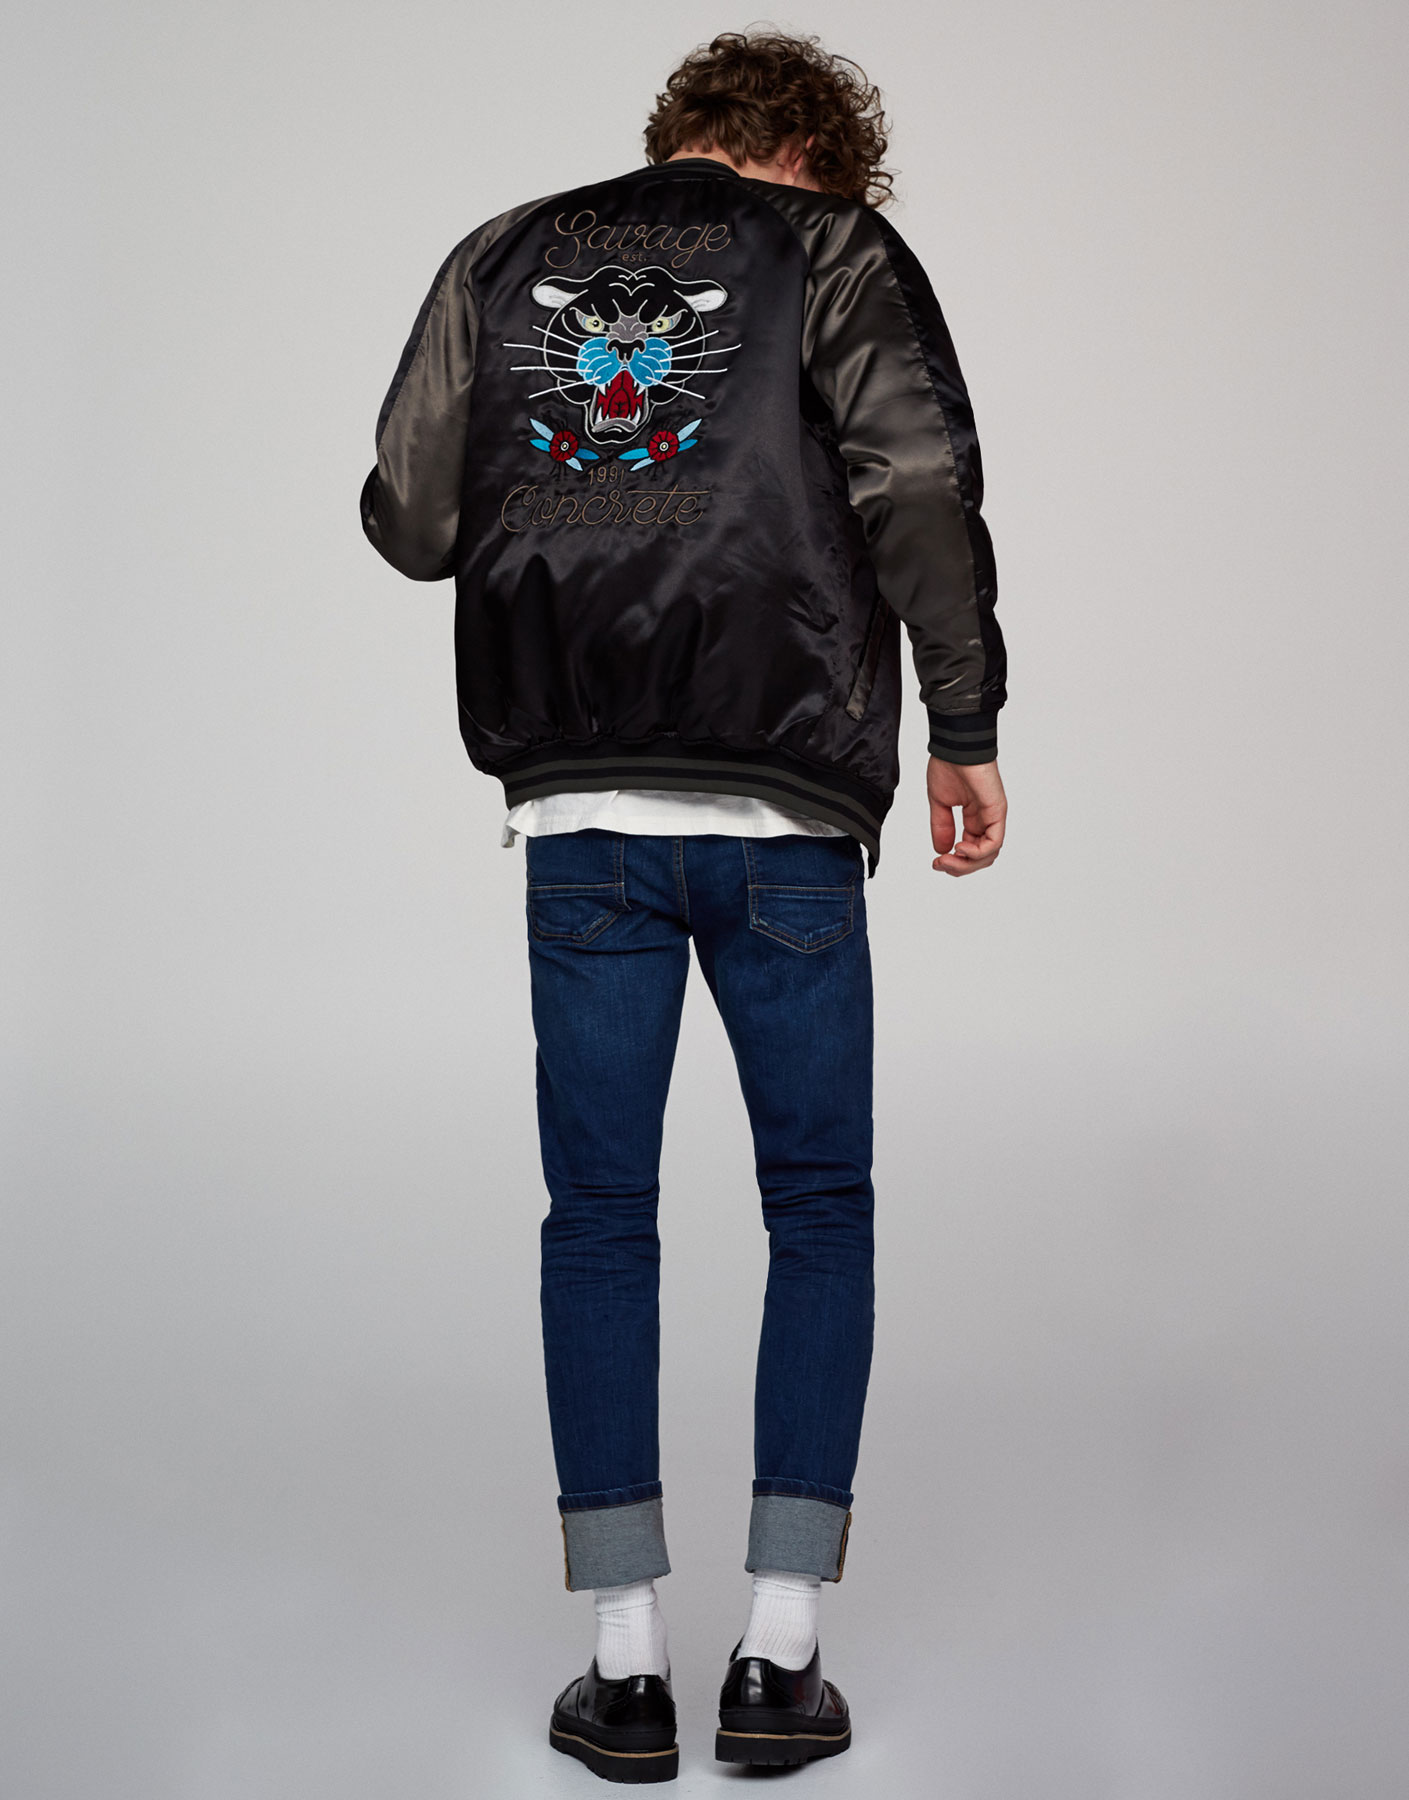 Glossy bomber jacket with embroidered back